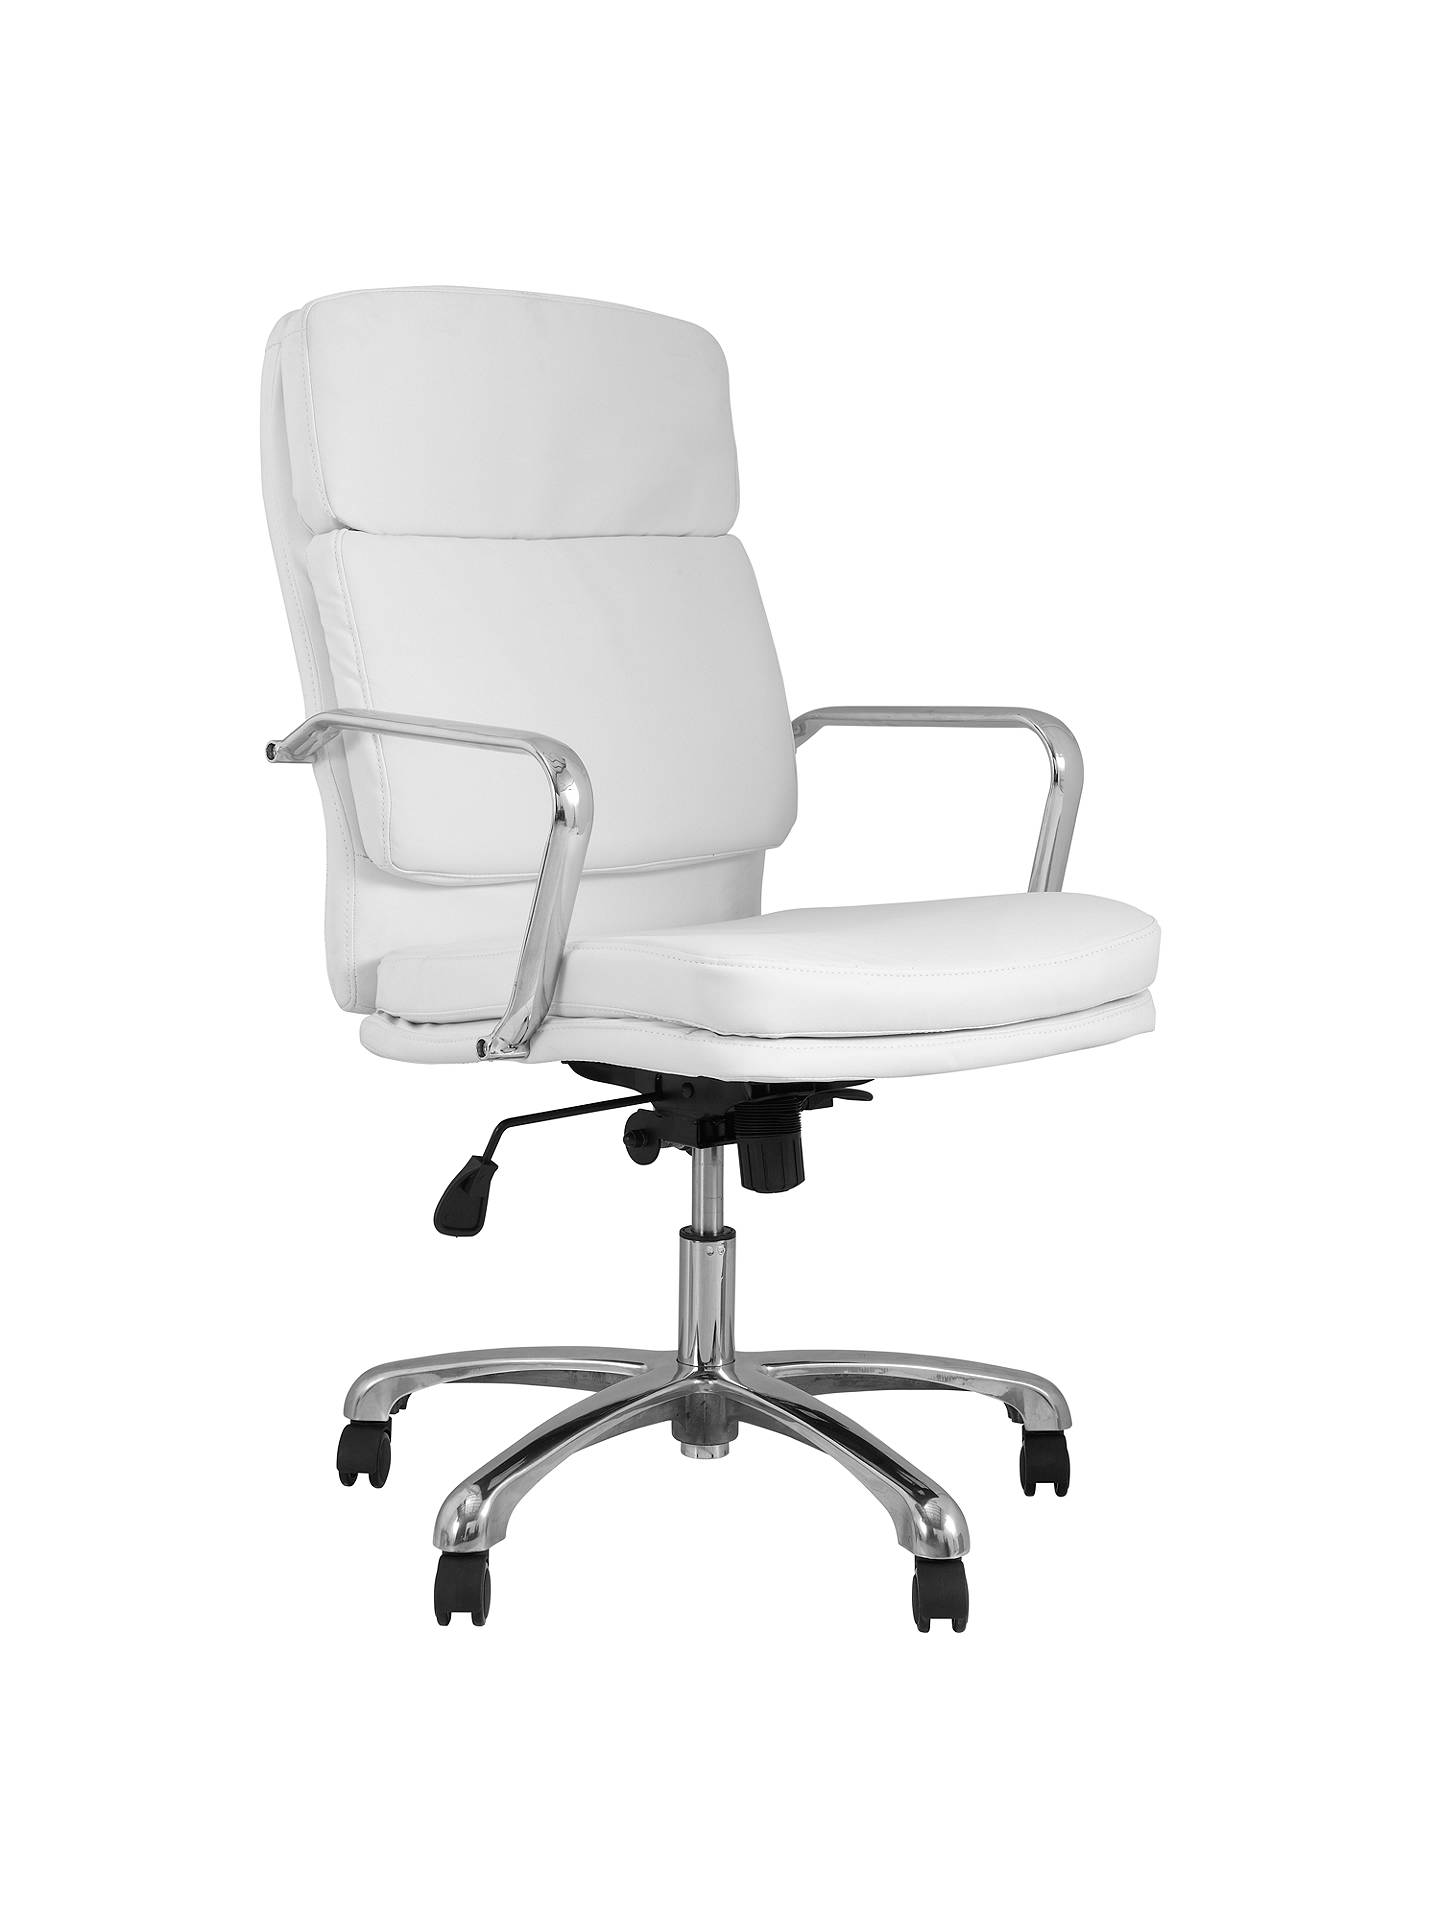 Buy John Lewis Amy Office Chair, White Online at johnlewis.com